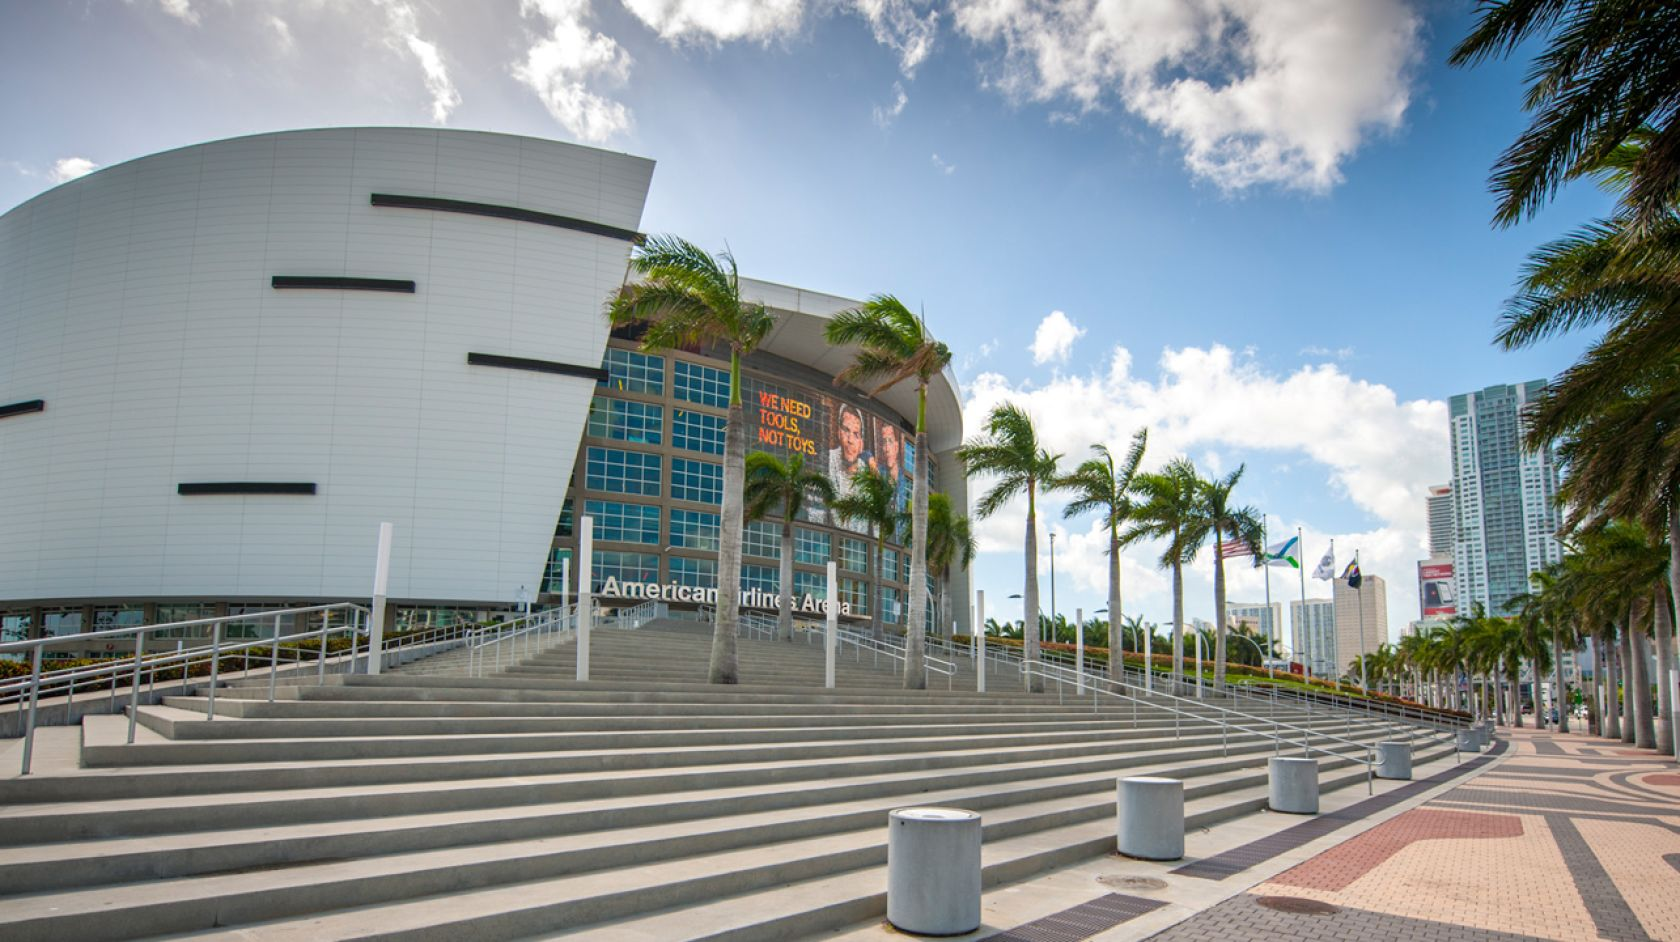 The American Airlines Arena